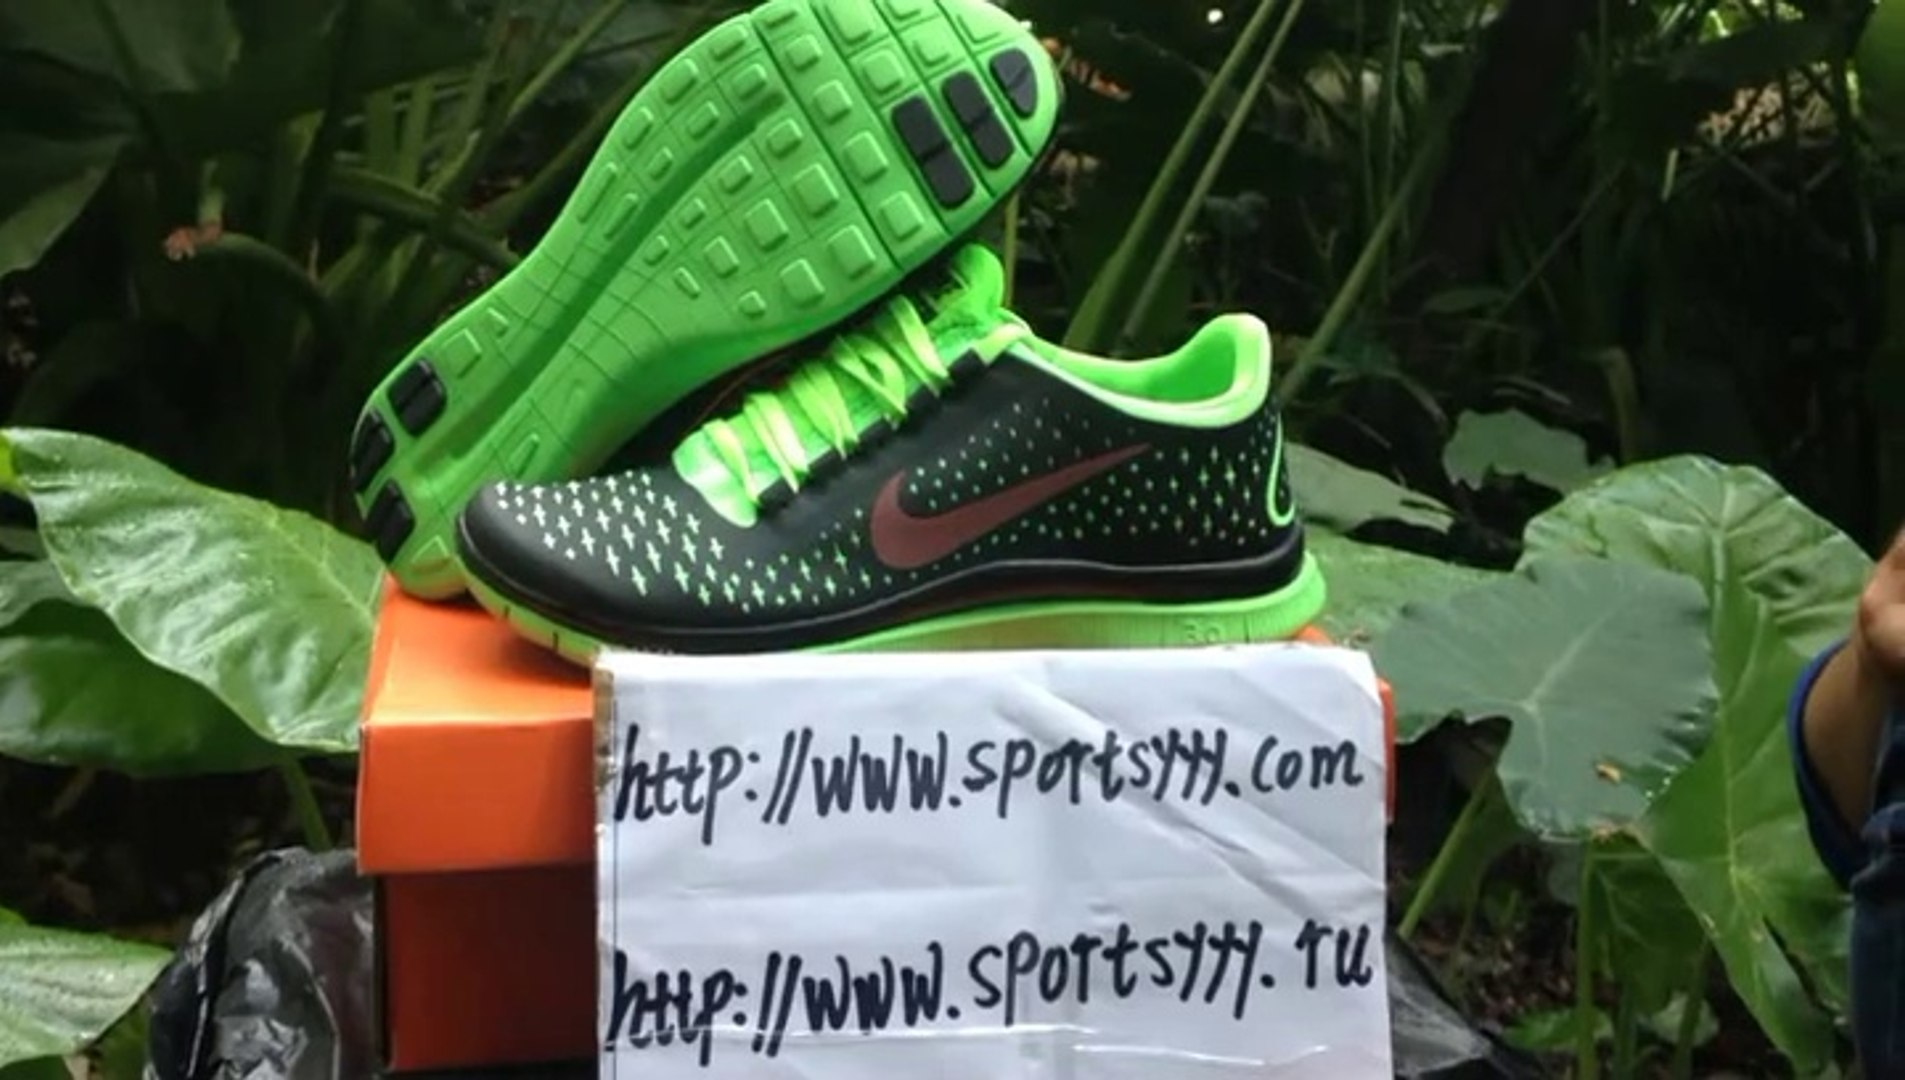 Nike Free Trainer 3.0 V4 iD Women's Training Shoe Cheap Nike Free Running Shoes From Tradingspring.cn